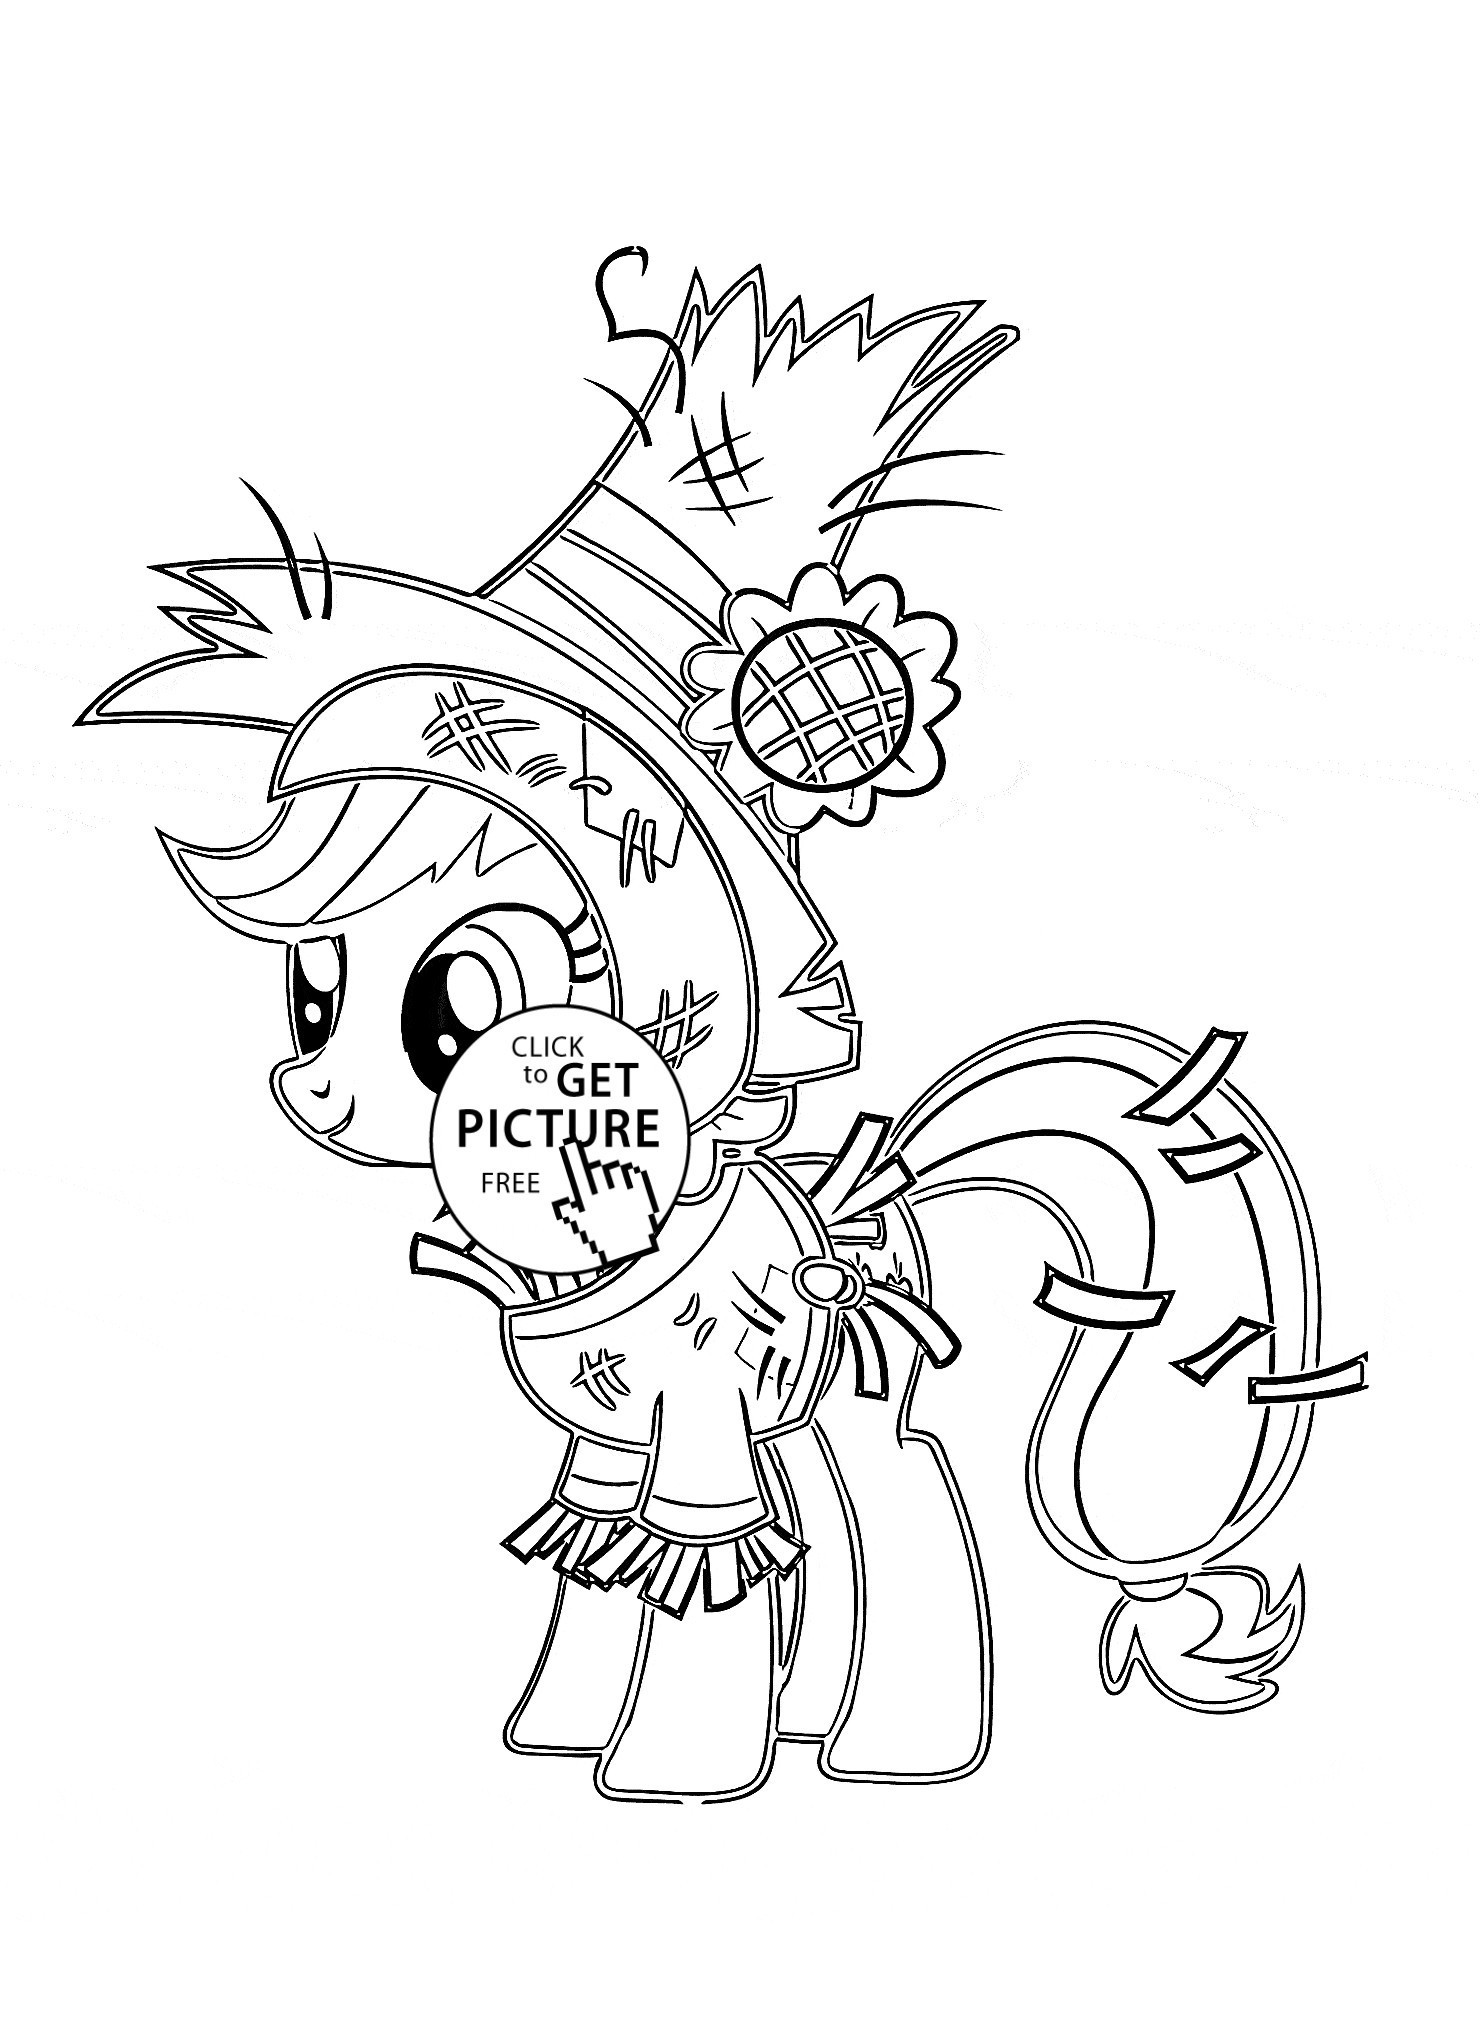 mlp color pages tinkerbell halloween coloring pages at getcoloringscom mlp color pages